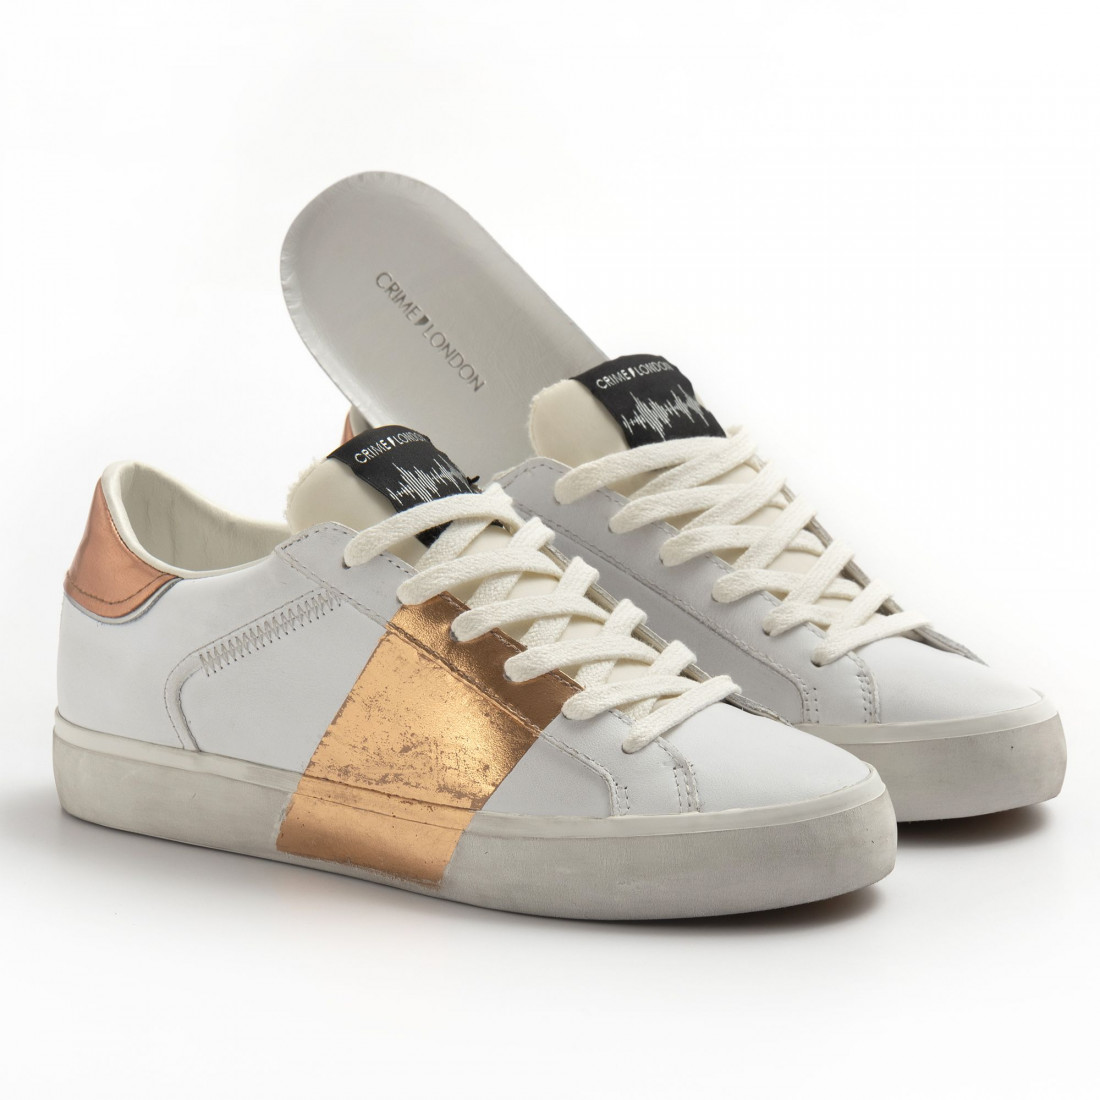 sneakers donna crime london 2556010 bianco rame 8284